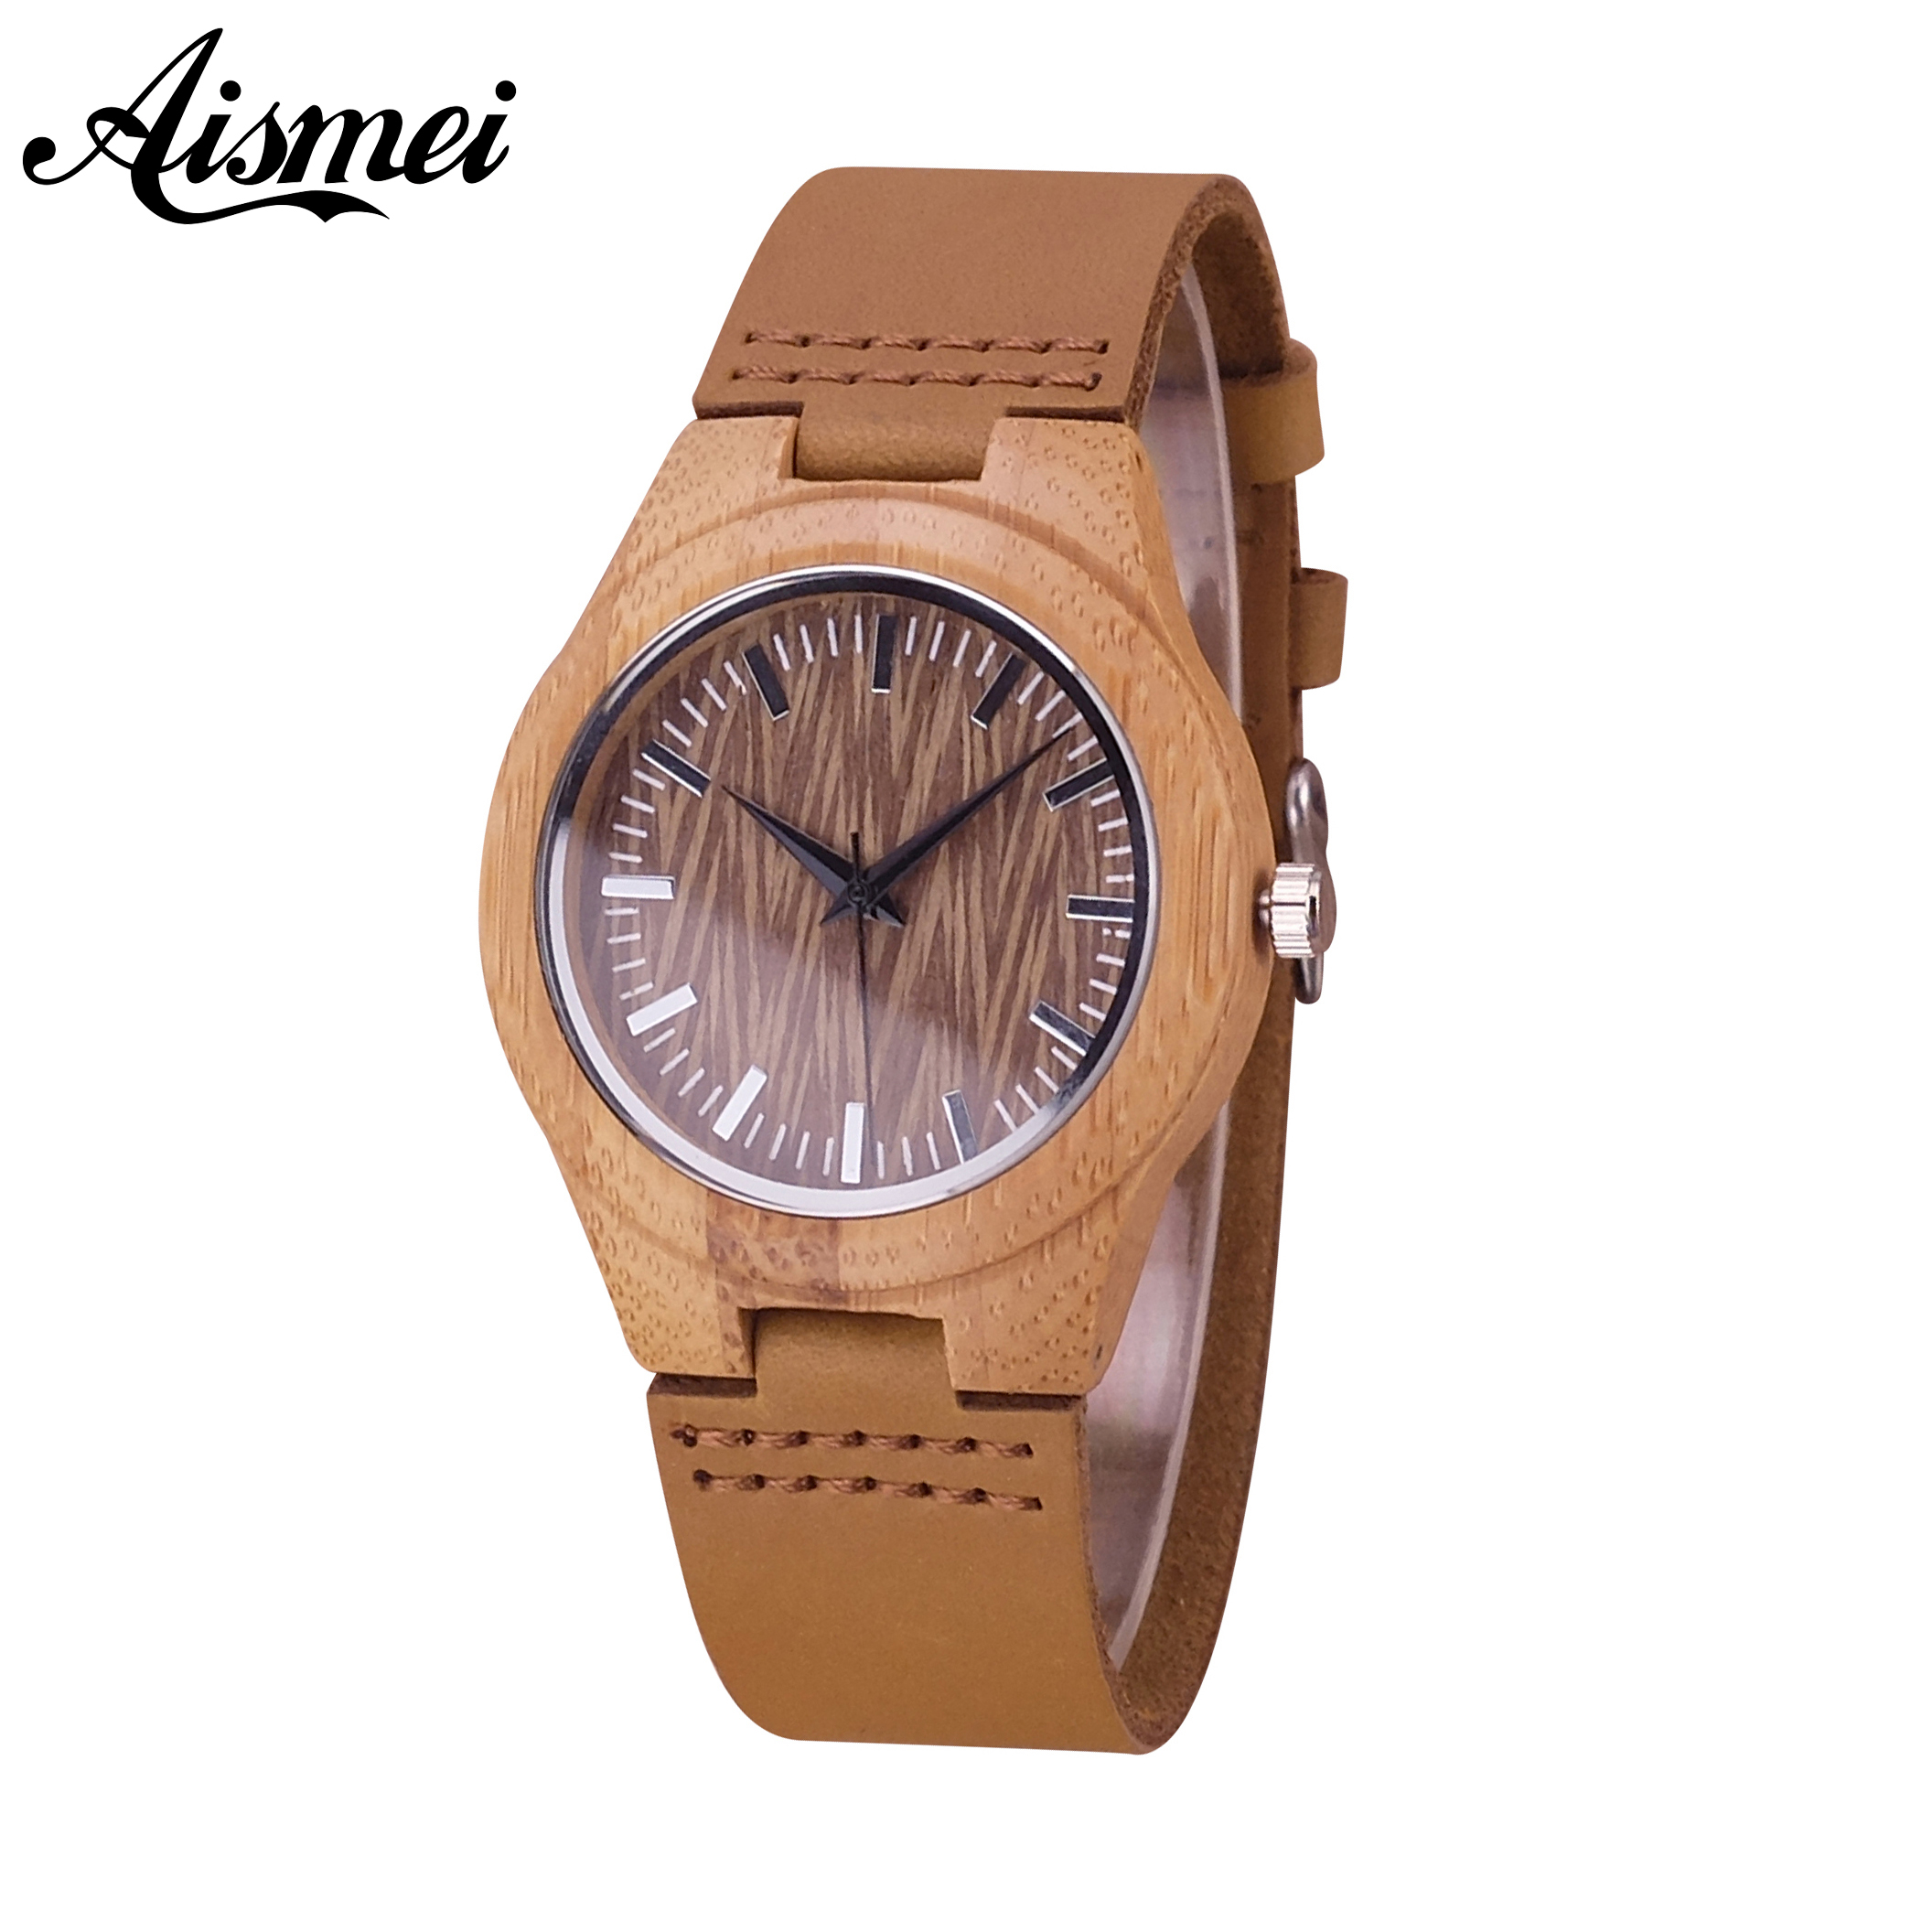 2018 Aismei Women Wood Watches Luxury Brand Genuine Leather Fashion Ladies Quartz Wrist Watch For Female Clock Relogio Feminino relogio feminino sinobi watches women fashion leather strap japan quartz wrist watch for women ladies luxury brand wristwatch